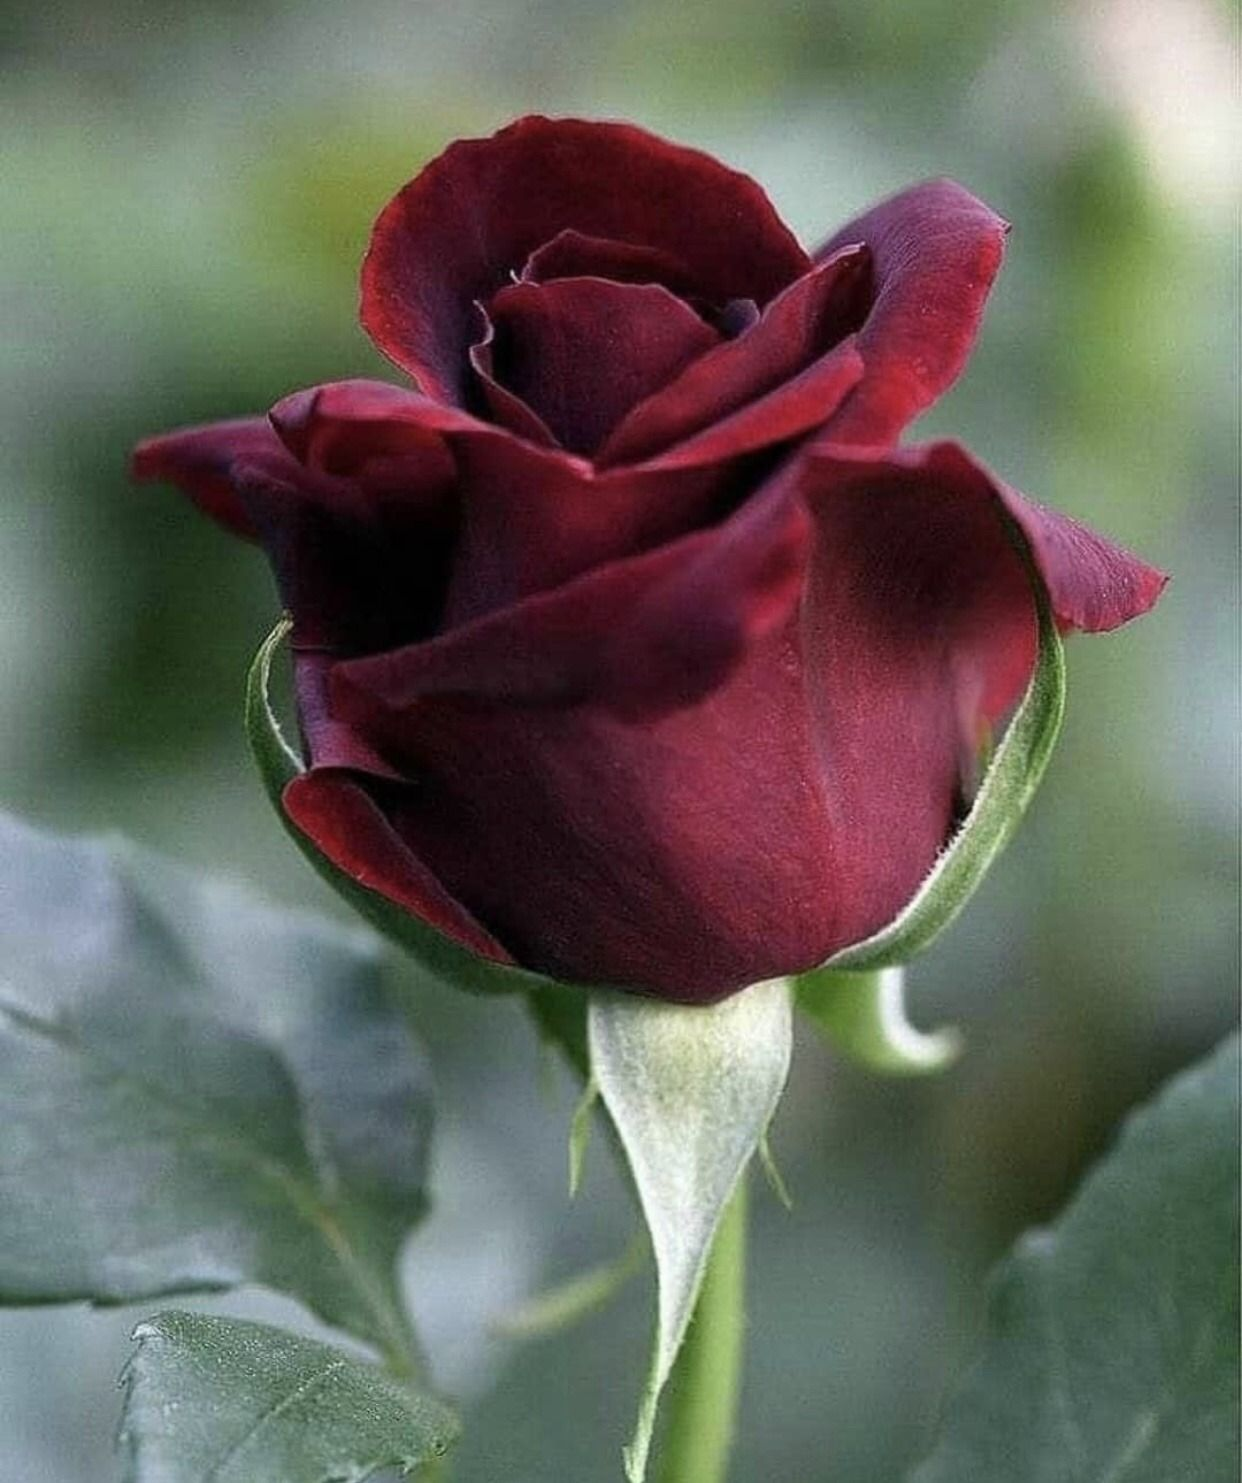 Flower love in 2020 rose flower pictures beautiful red